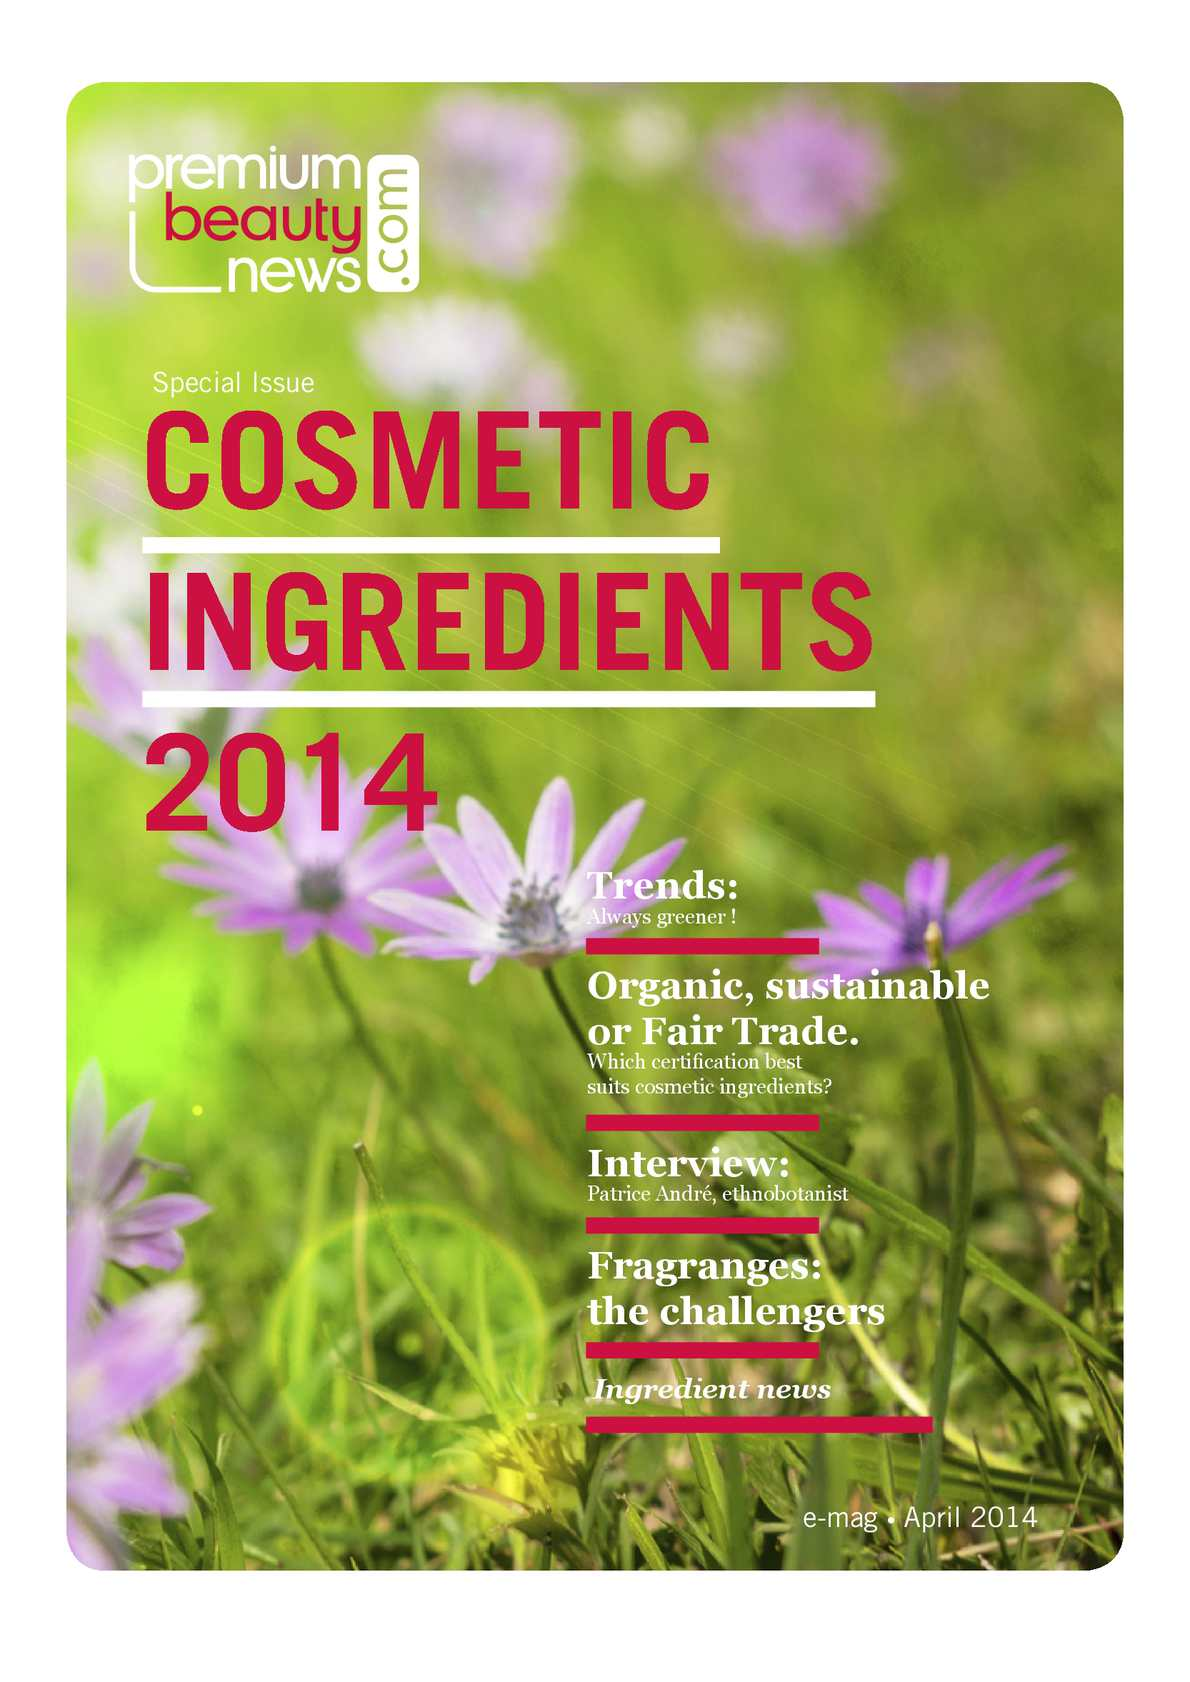 Calameo - cosmetic ingredients - special issue, premiumbeautynews.com.